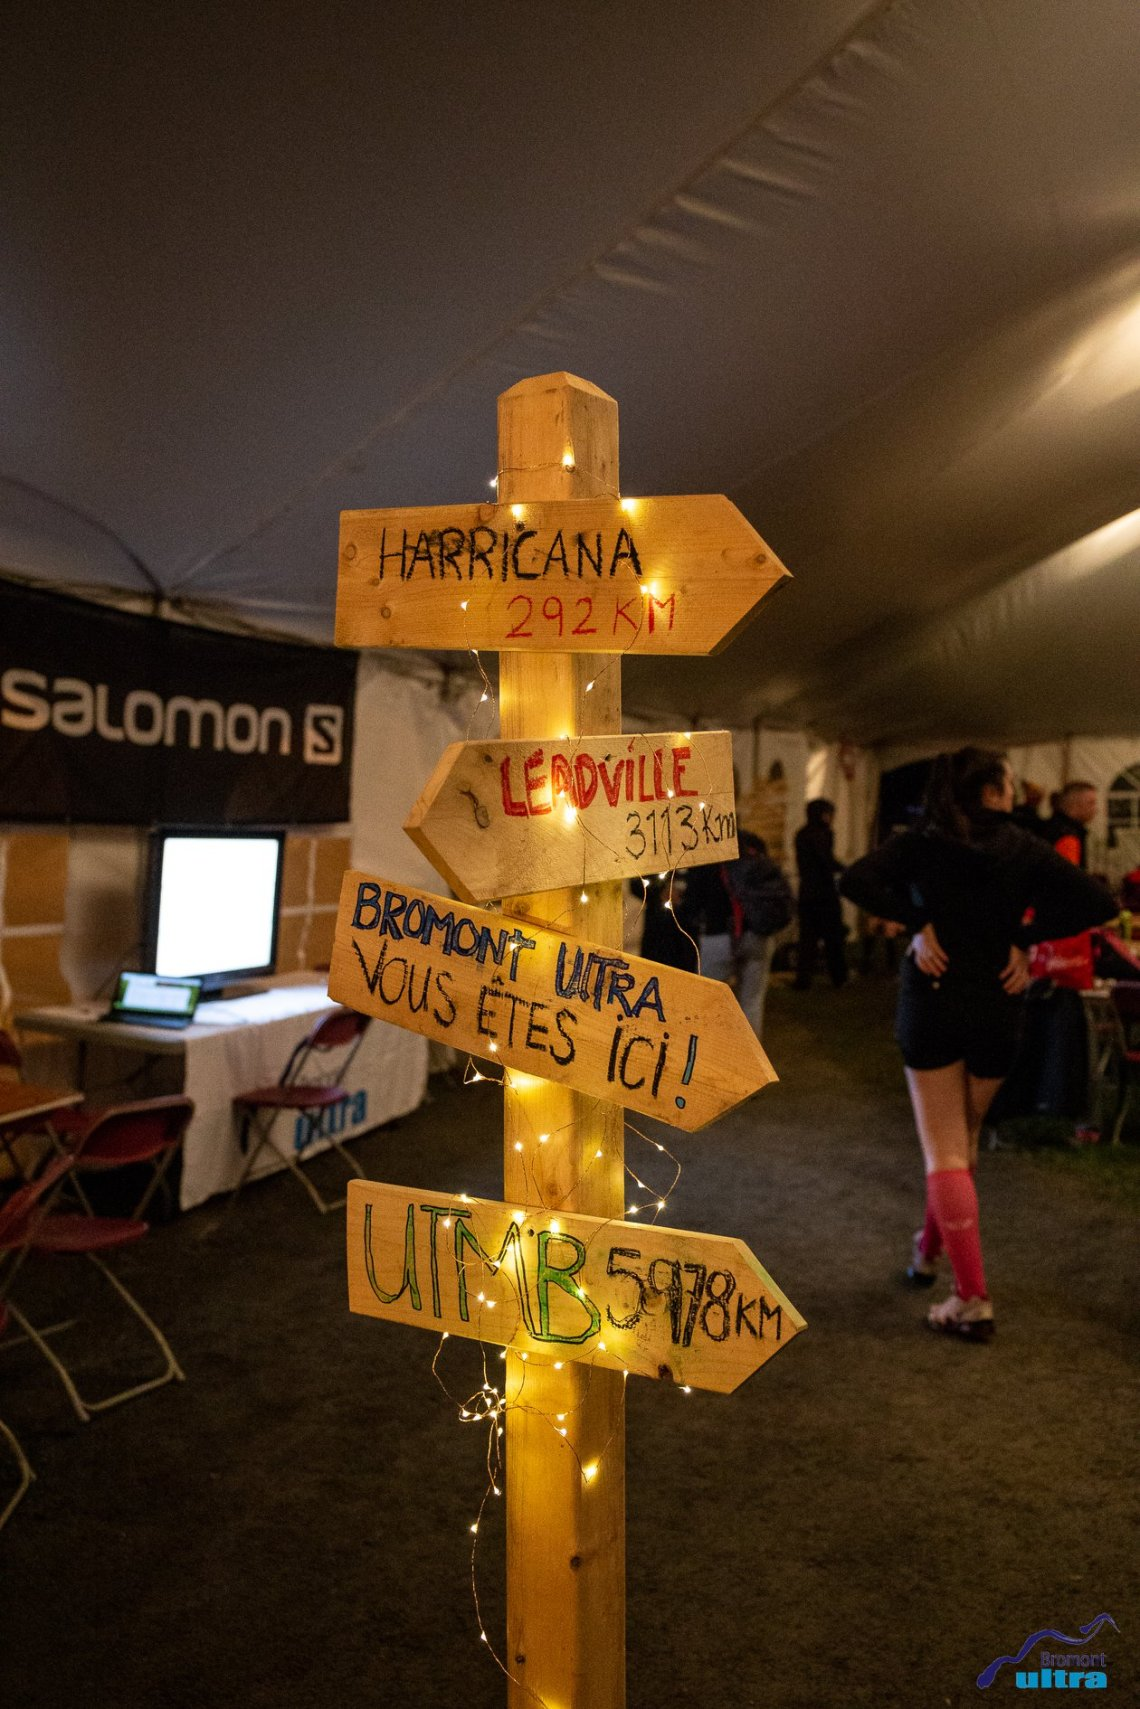 Bromont Ultra pic - UR Here